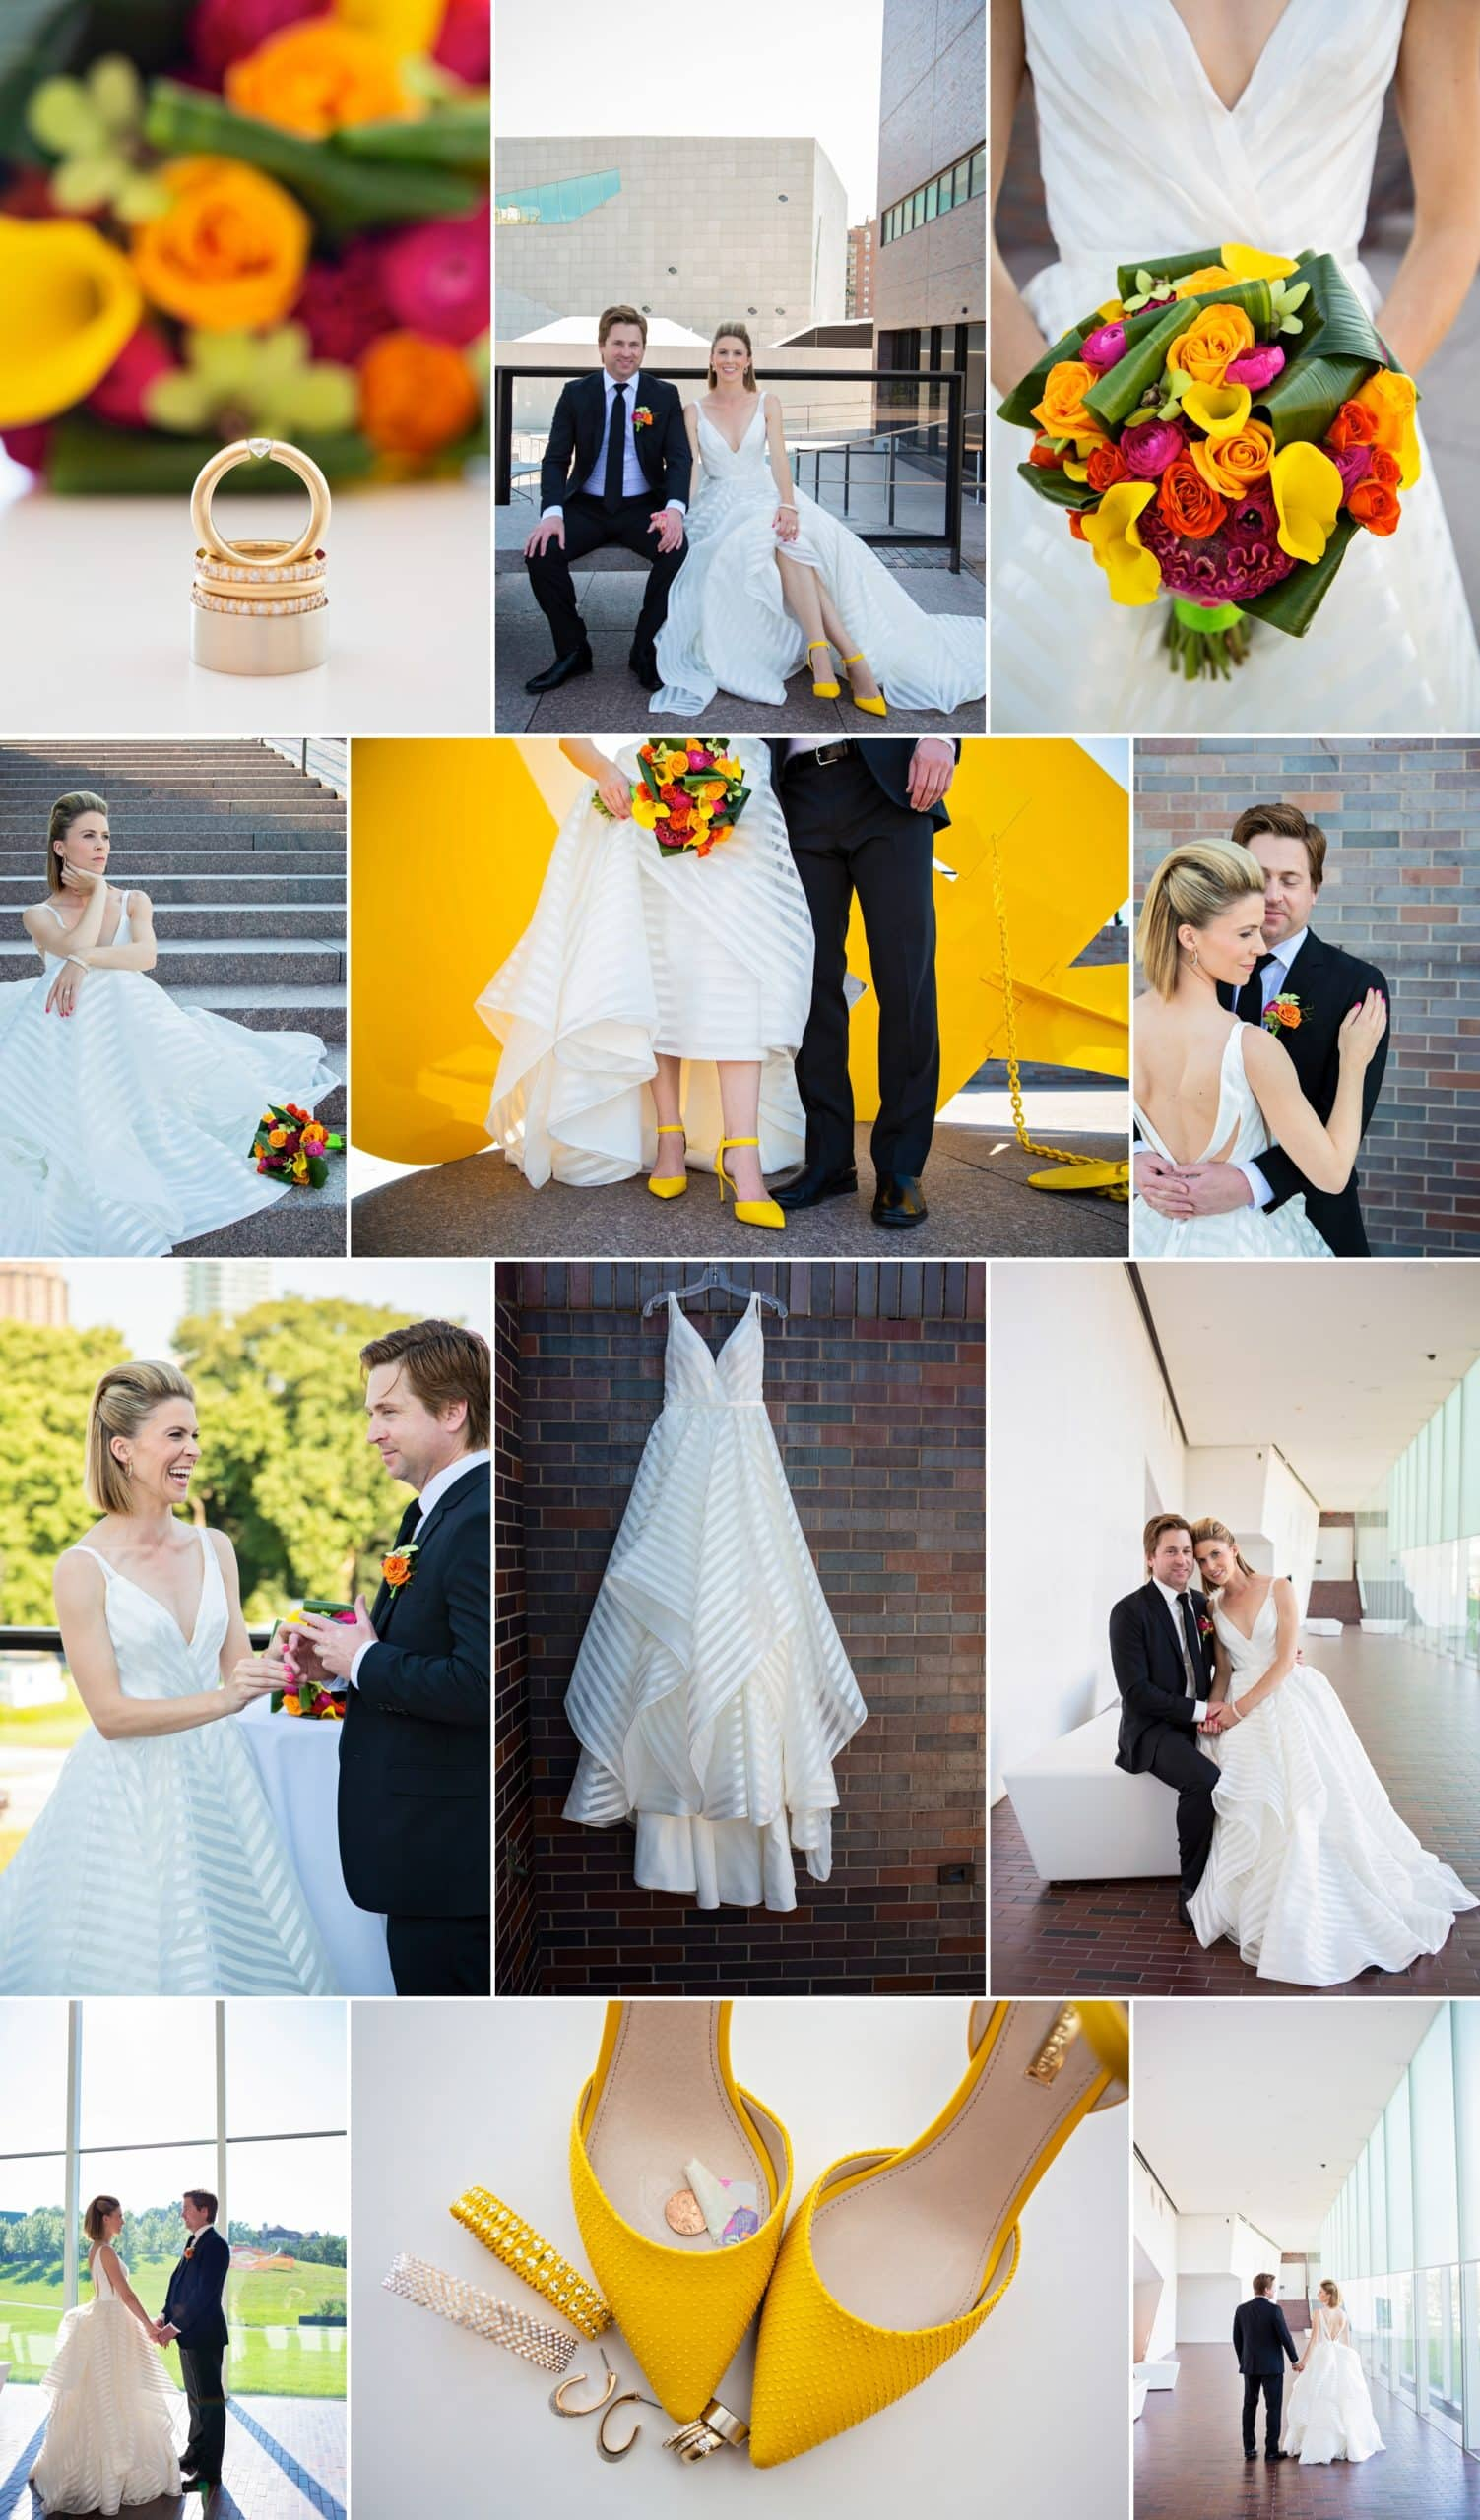 Photo collage of Minneapolis wedding photography editing collaboration by wedding photographers Allison Million and Rachel Lahlum.